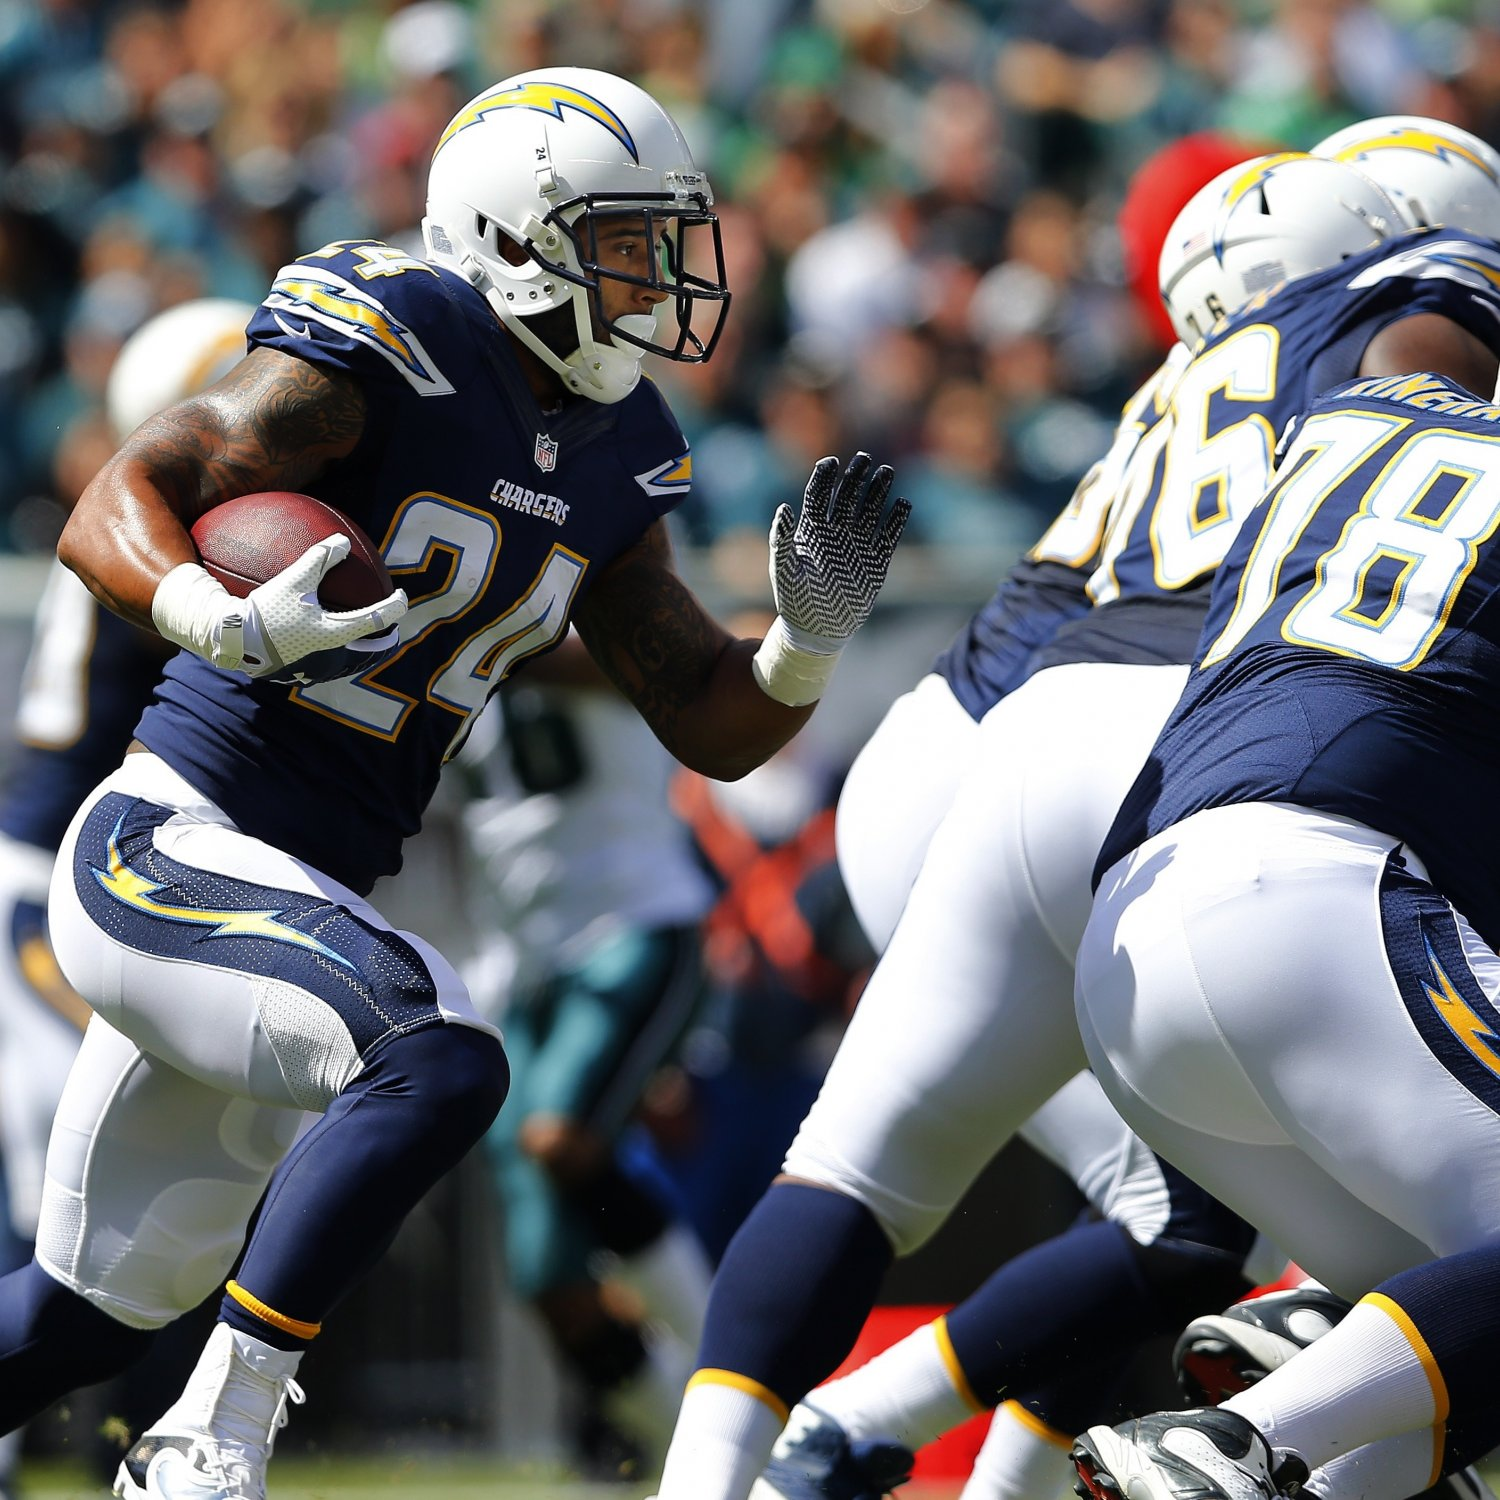 San Diego Chargers Game Live Stream: Ryan Mathews Injury: Updates On Chargers RB's Head, Likely